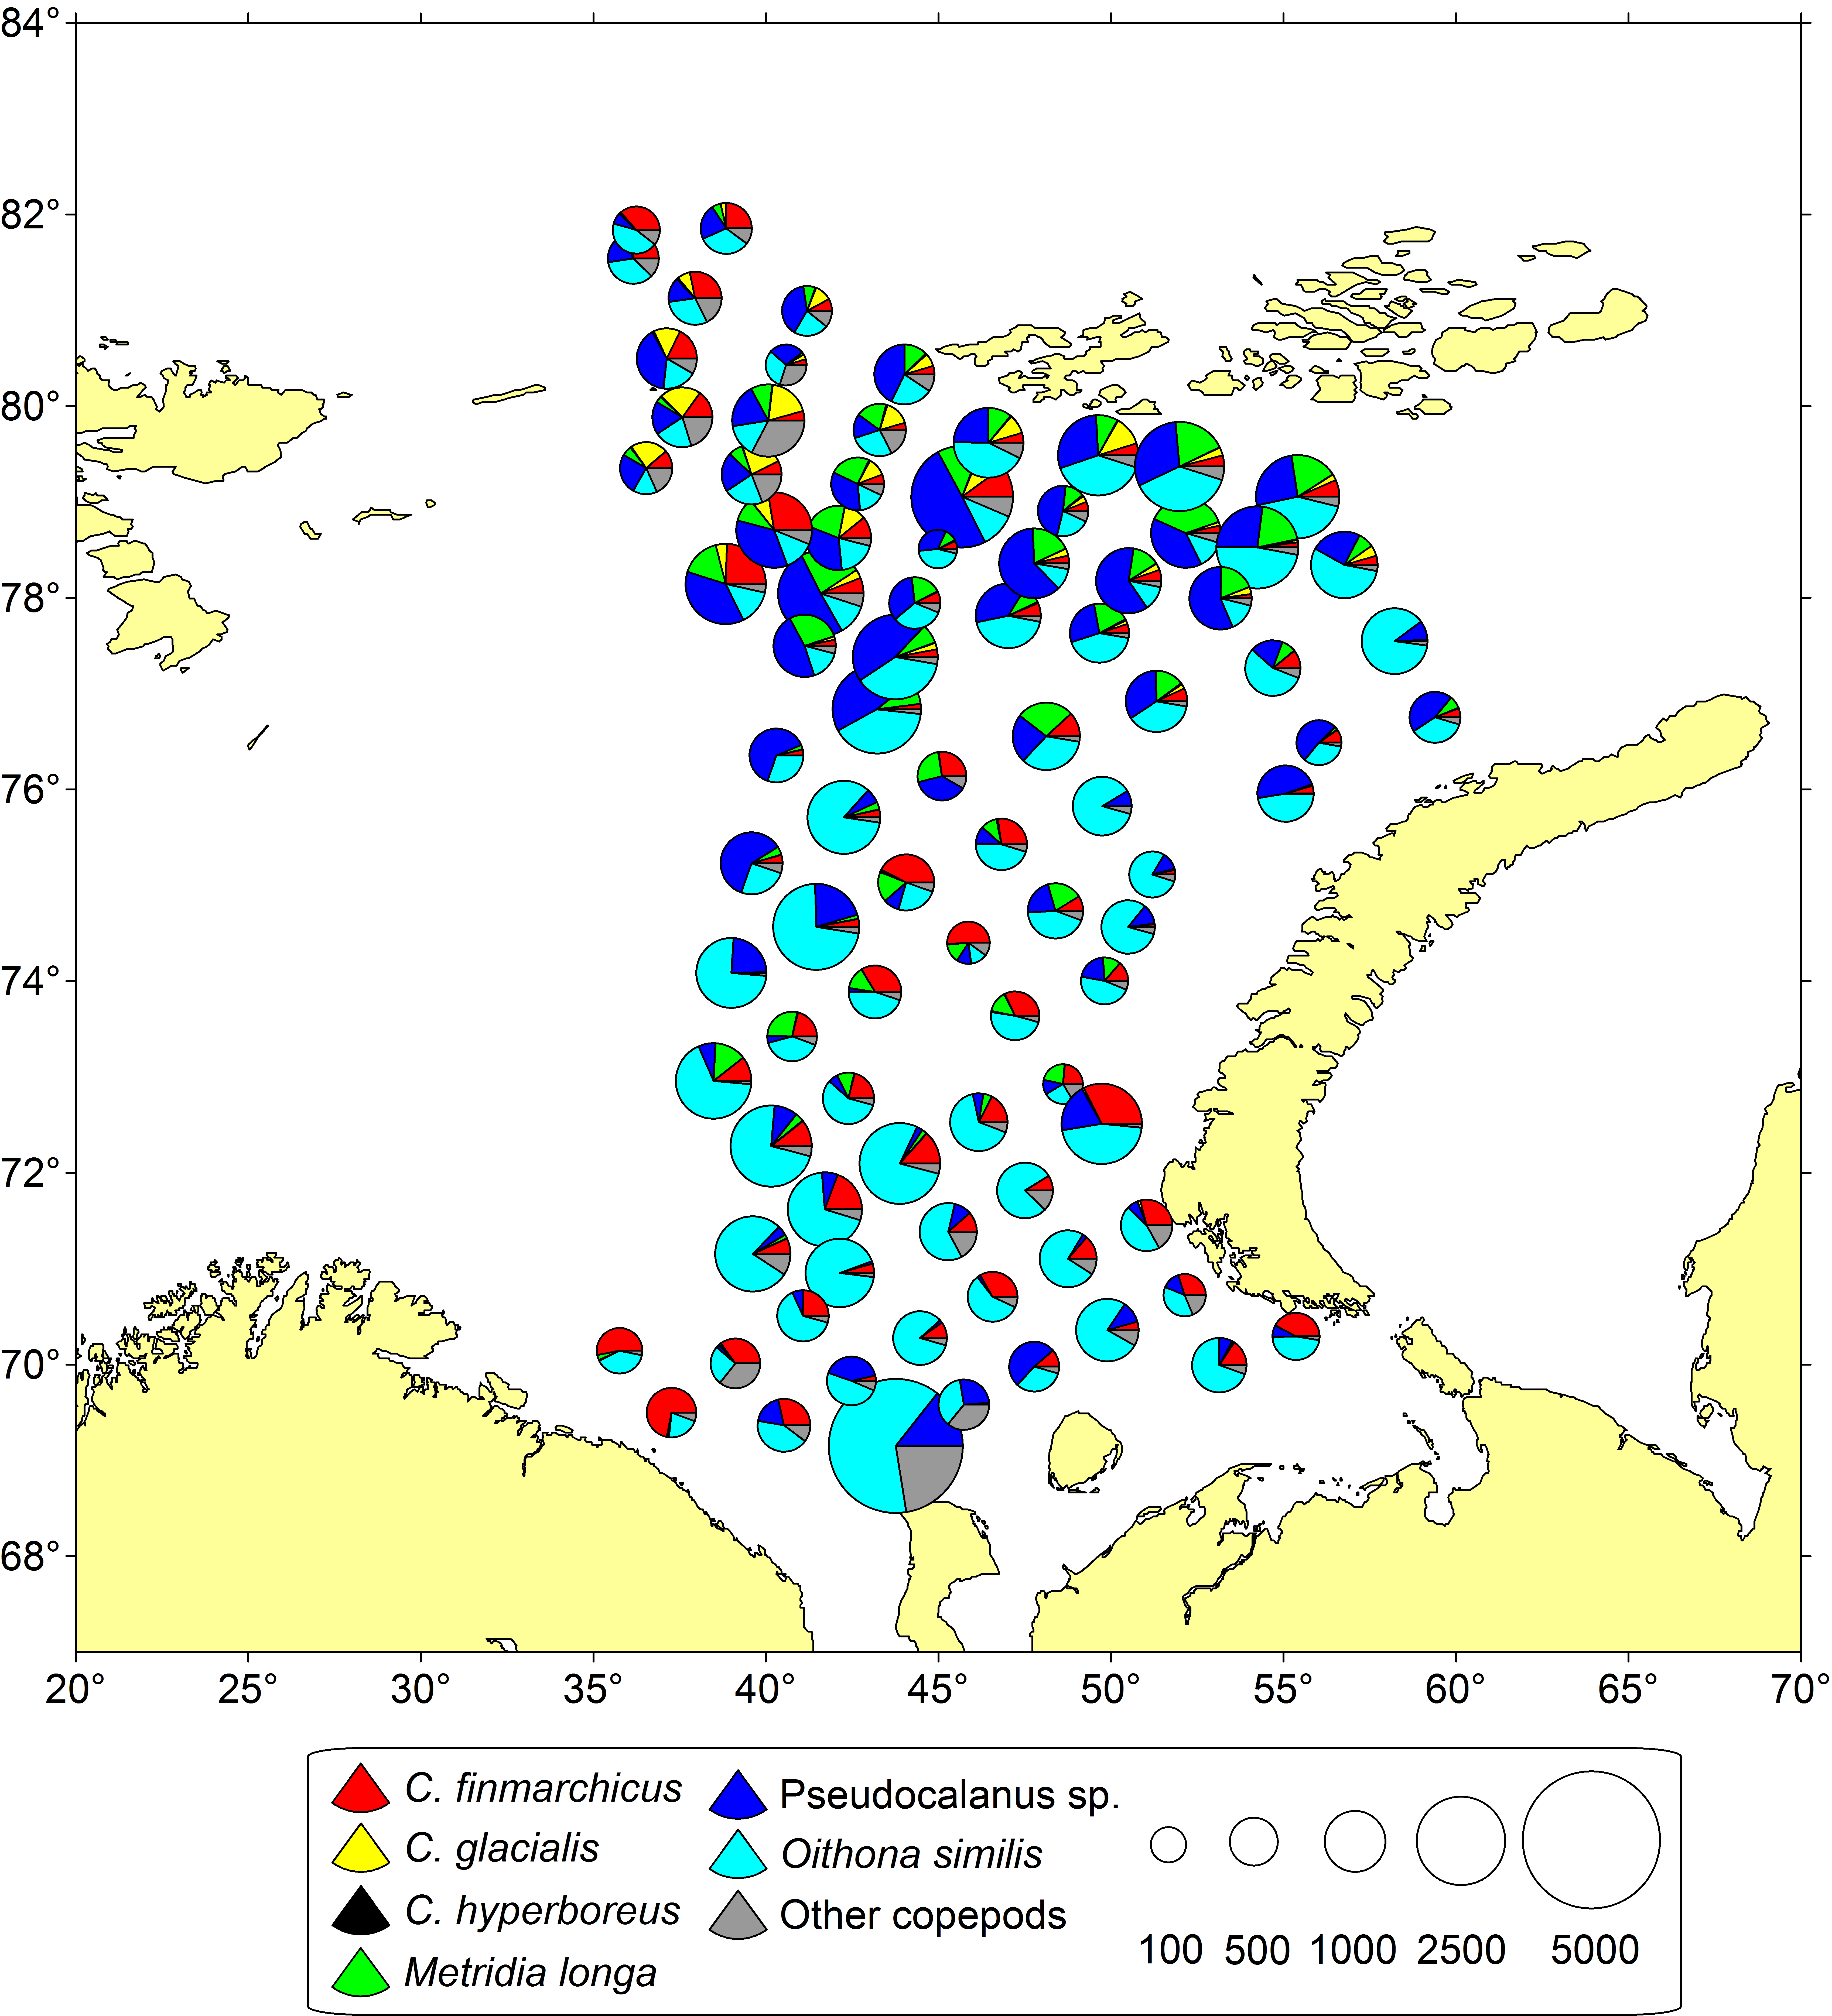 Figure 3.3.7. Abundance (ind. m-3) of the most numerous copepod species (surface to sea floor) in the Barents Sea (based on the PINRO samples from the BESS during August-September of 2017).